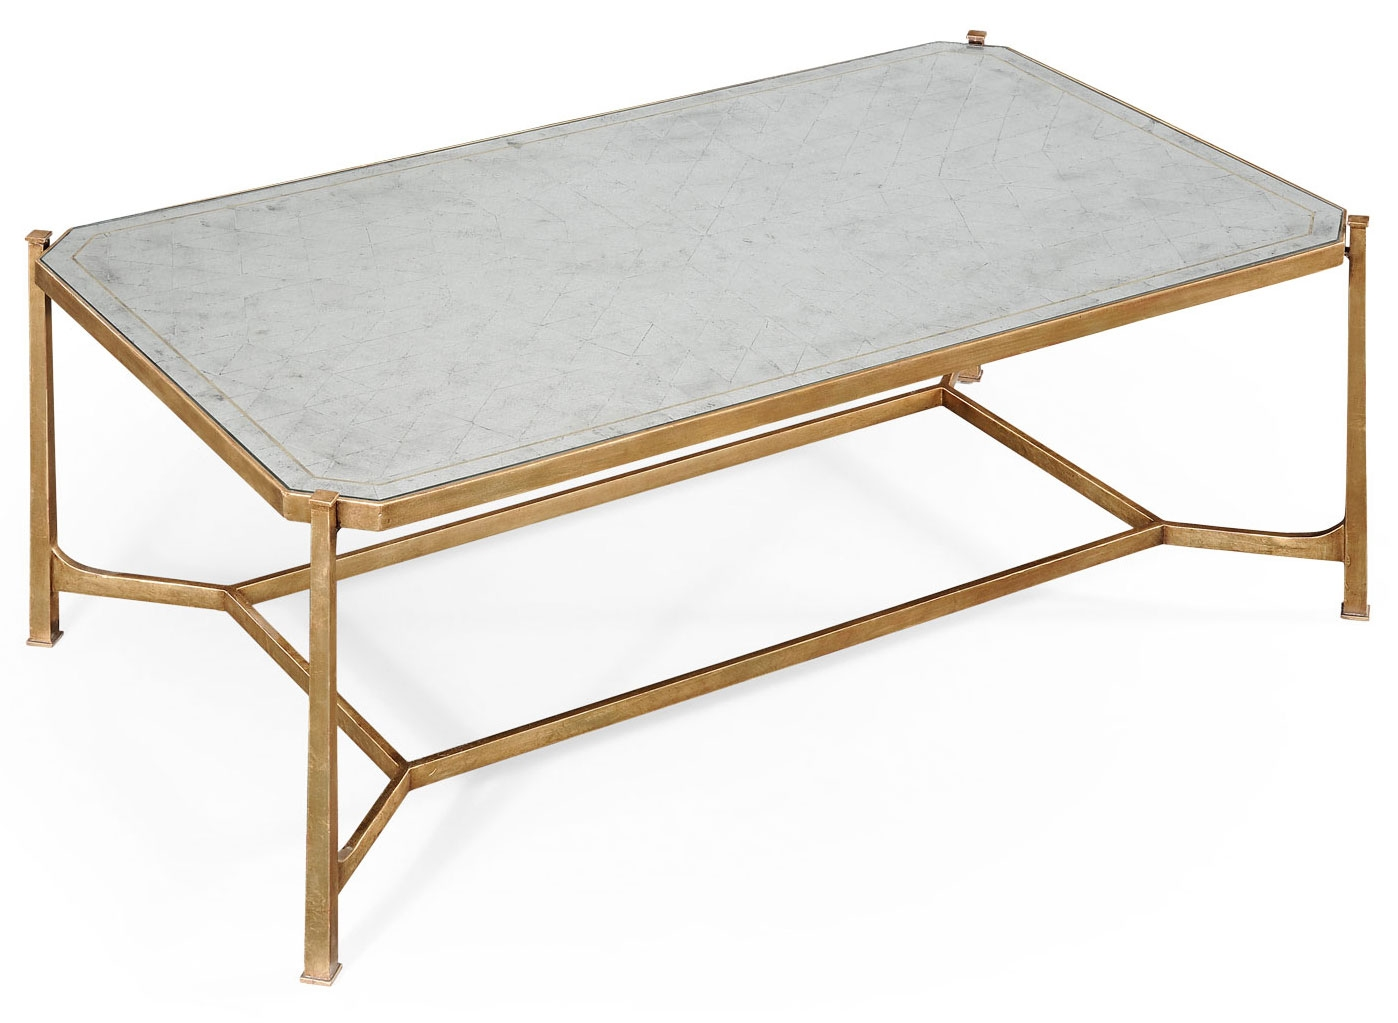 Contemporary Rectangular Glass Top Coffee Table: glass top for coffee table